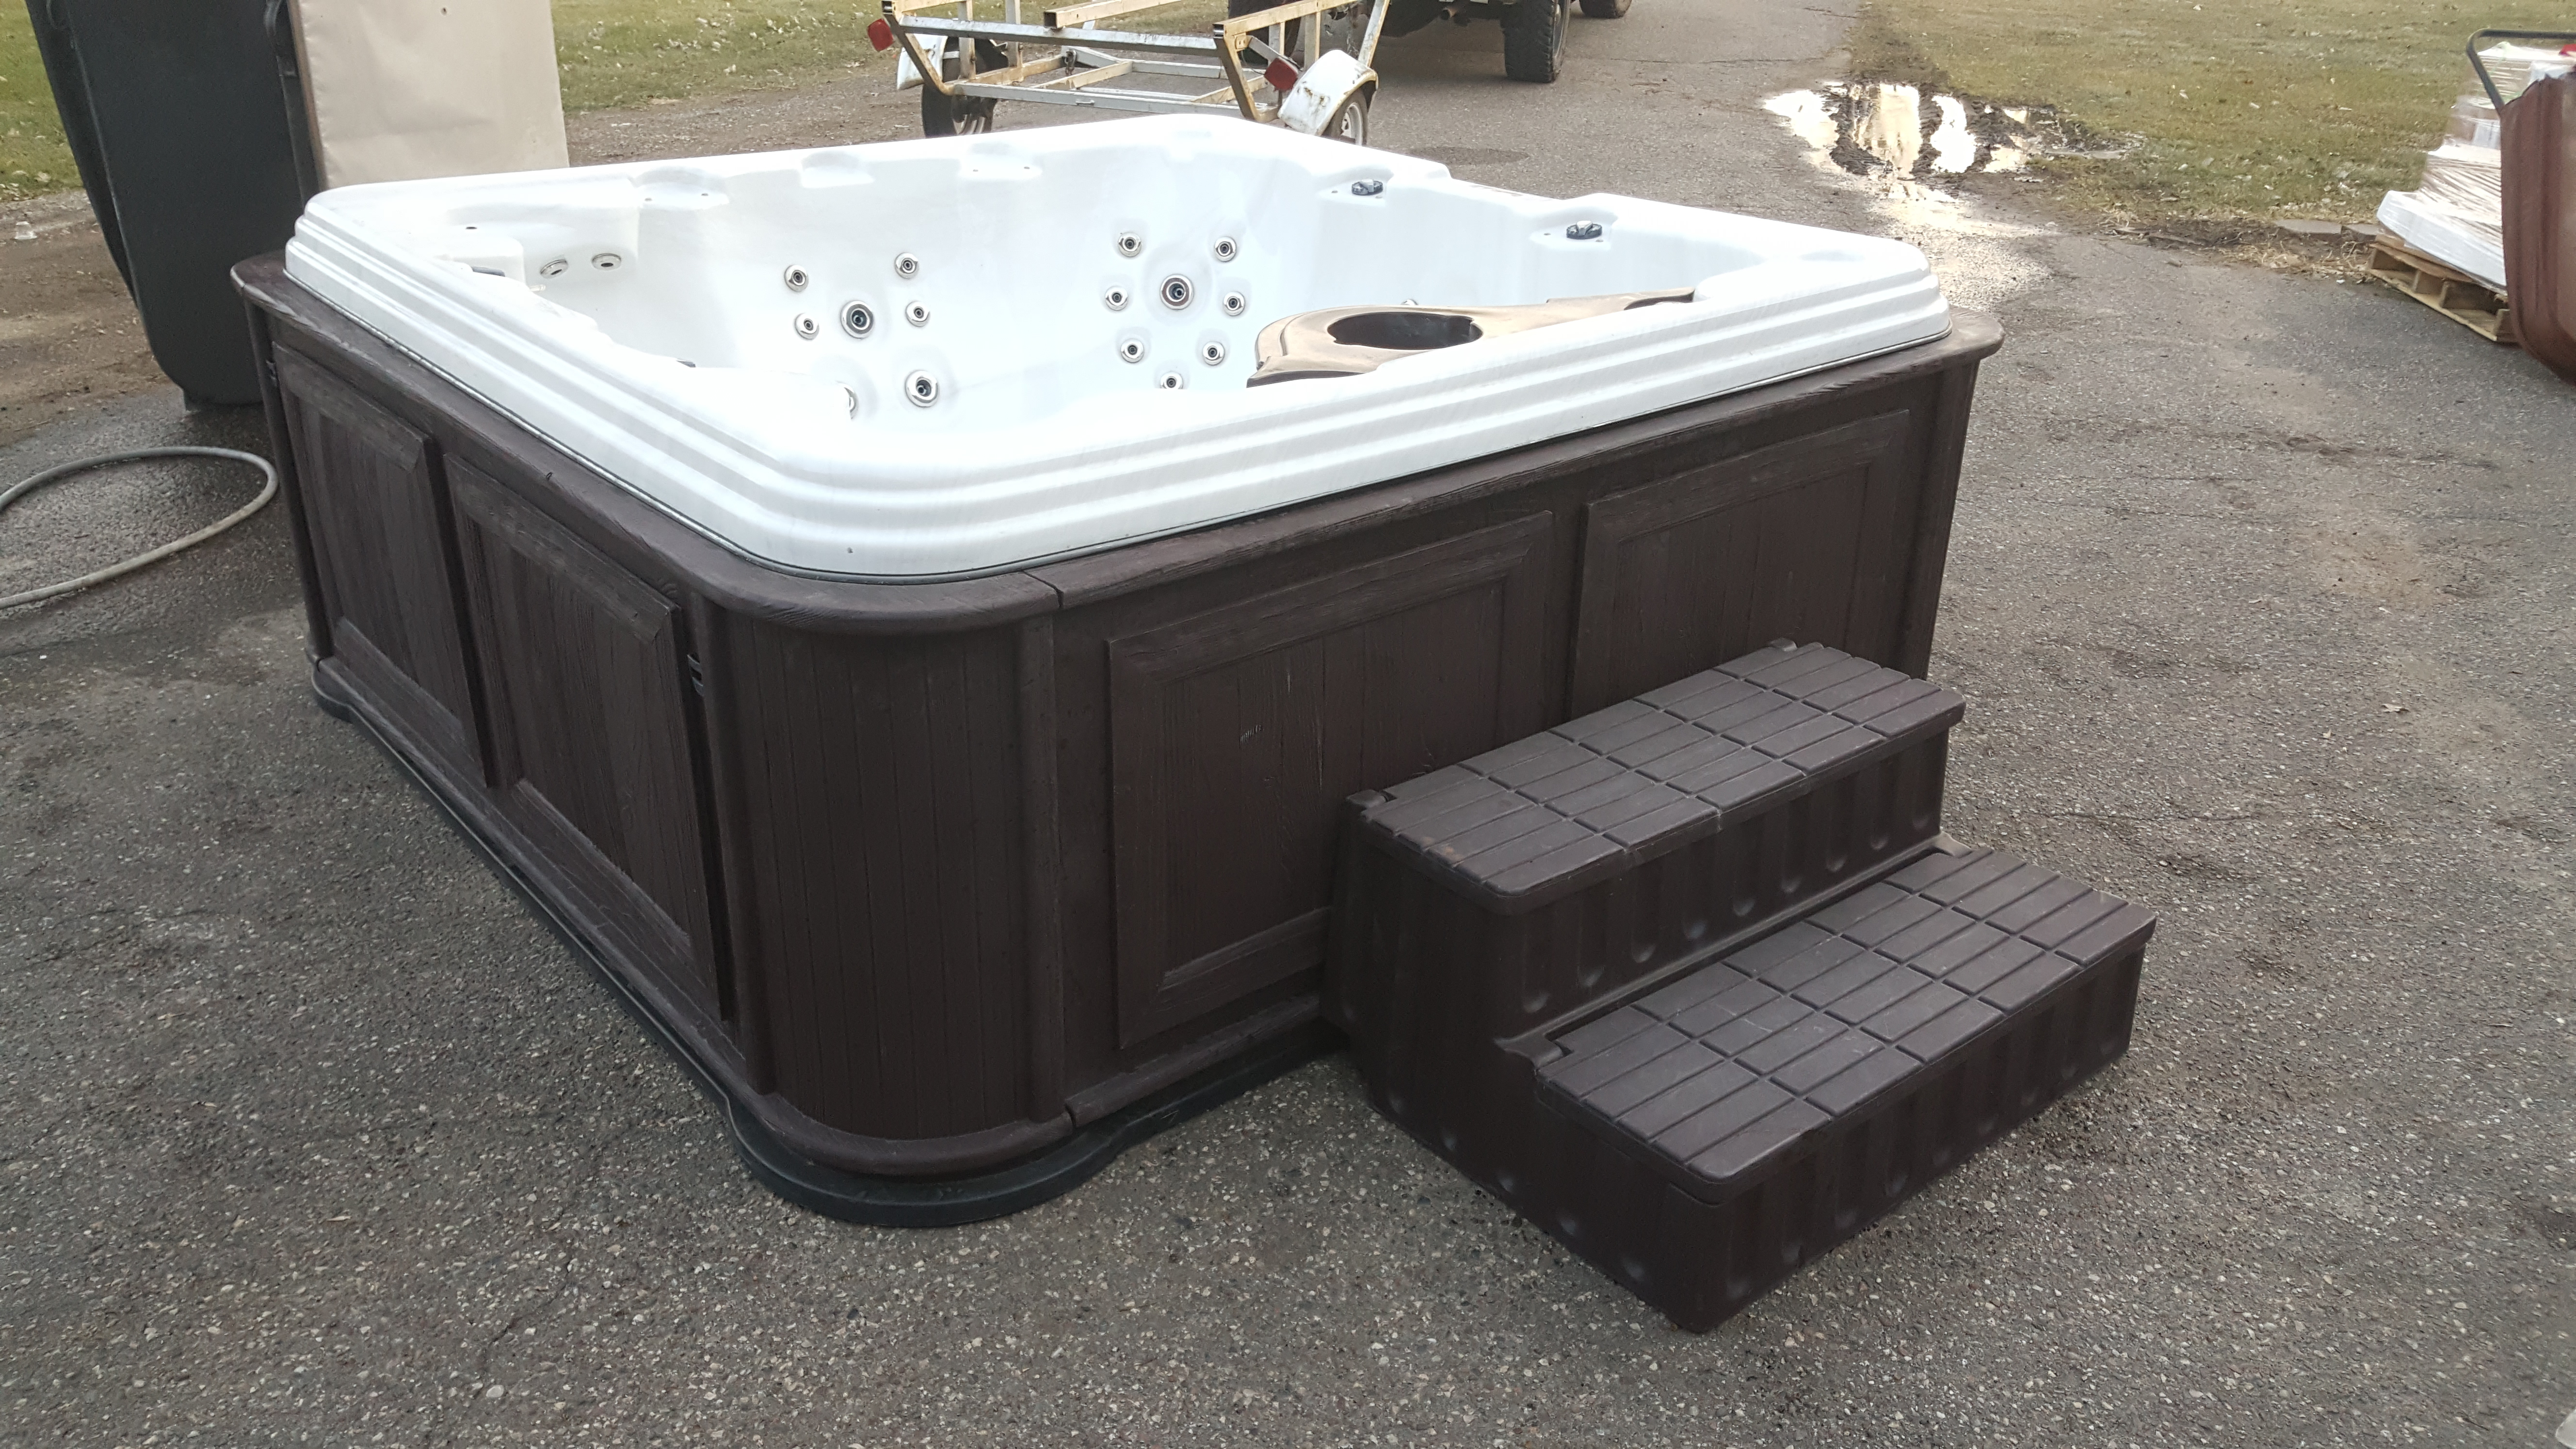 cost used tub run it news much for swimming a sale full how to hot size pools does